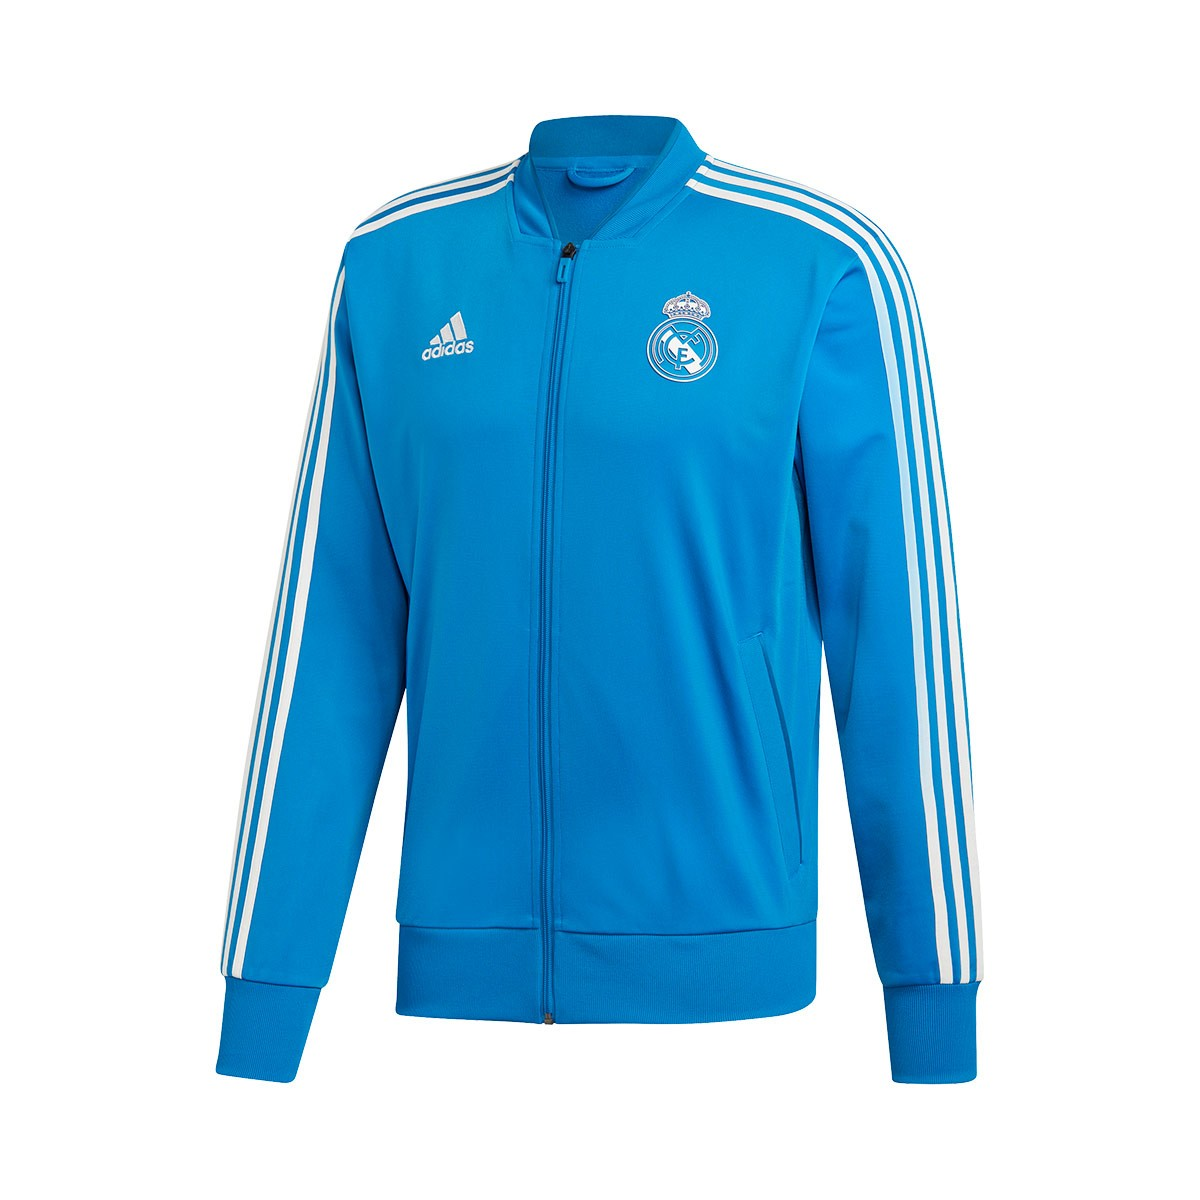 abd0d0b0b Jacket adidas Real Madrid PES 2018-2019 Craft blue-Core white ...